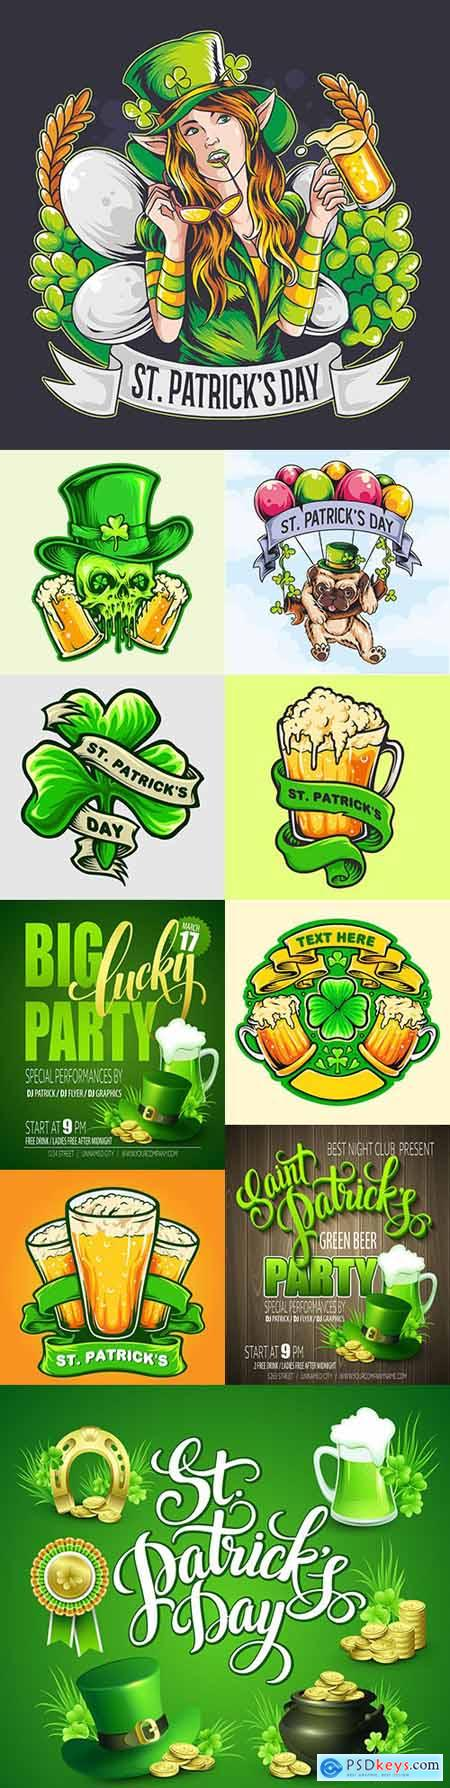 St Patricks Day party and design emblems illustrations 10